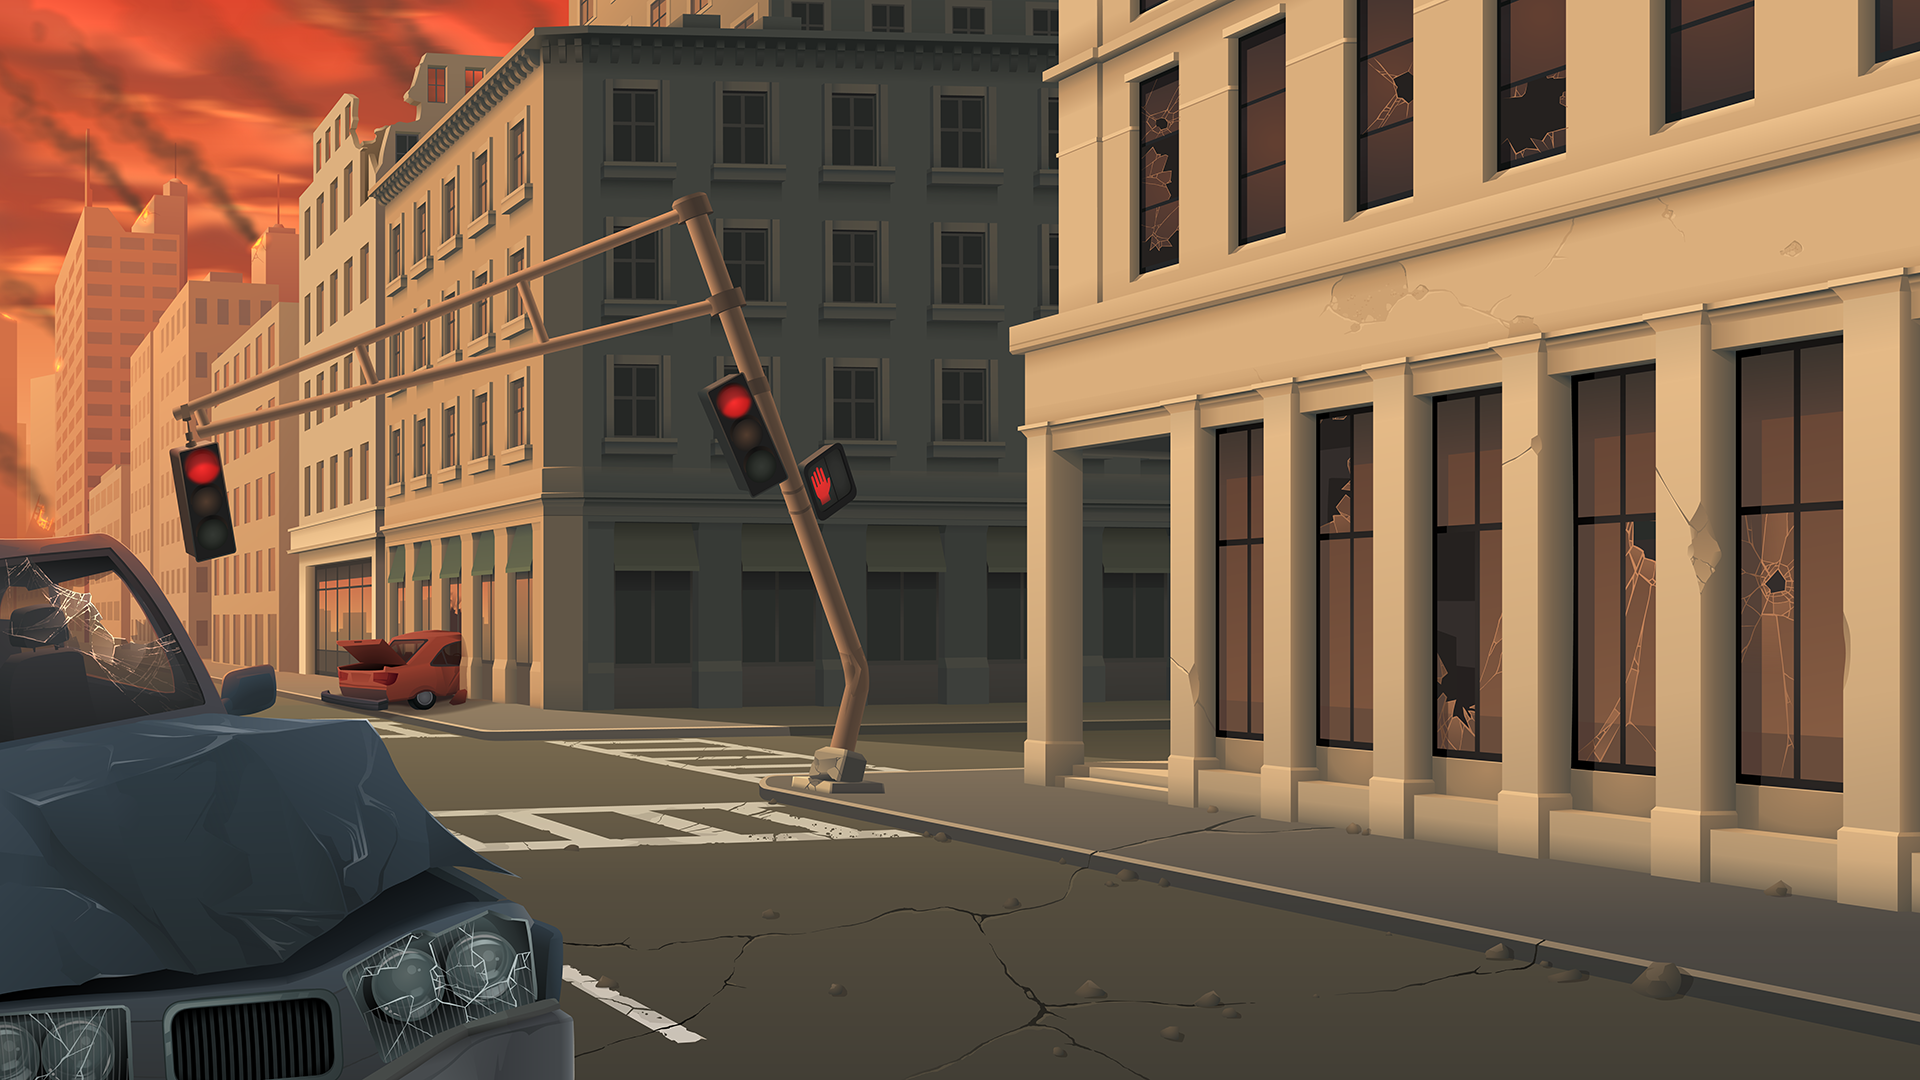 City Street Under Attack - Background Art